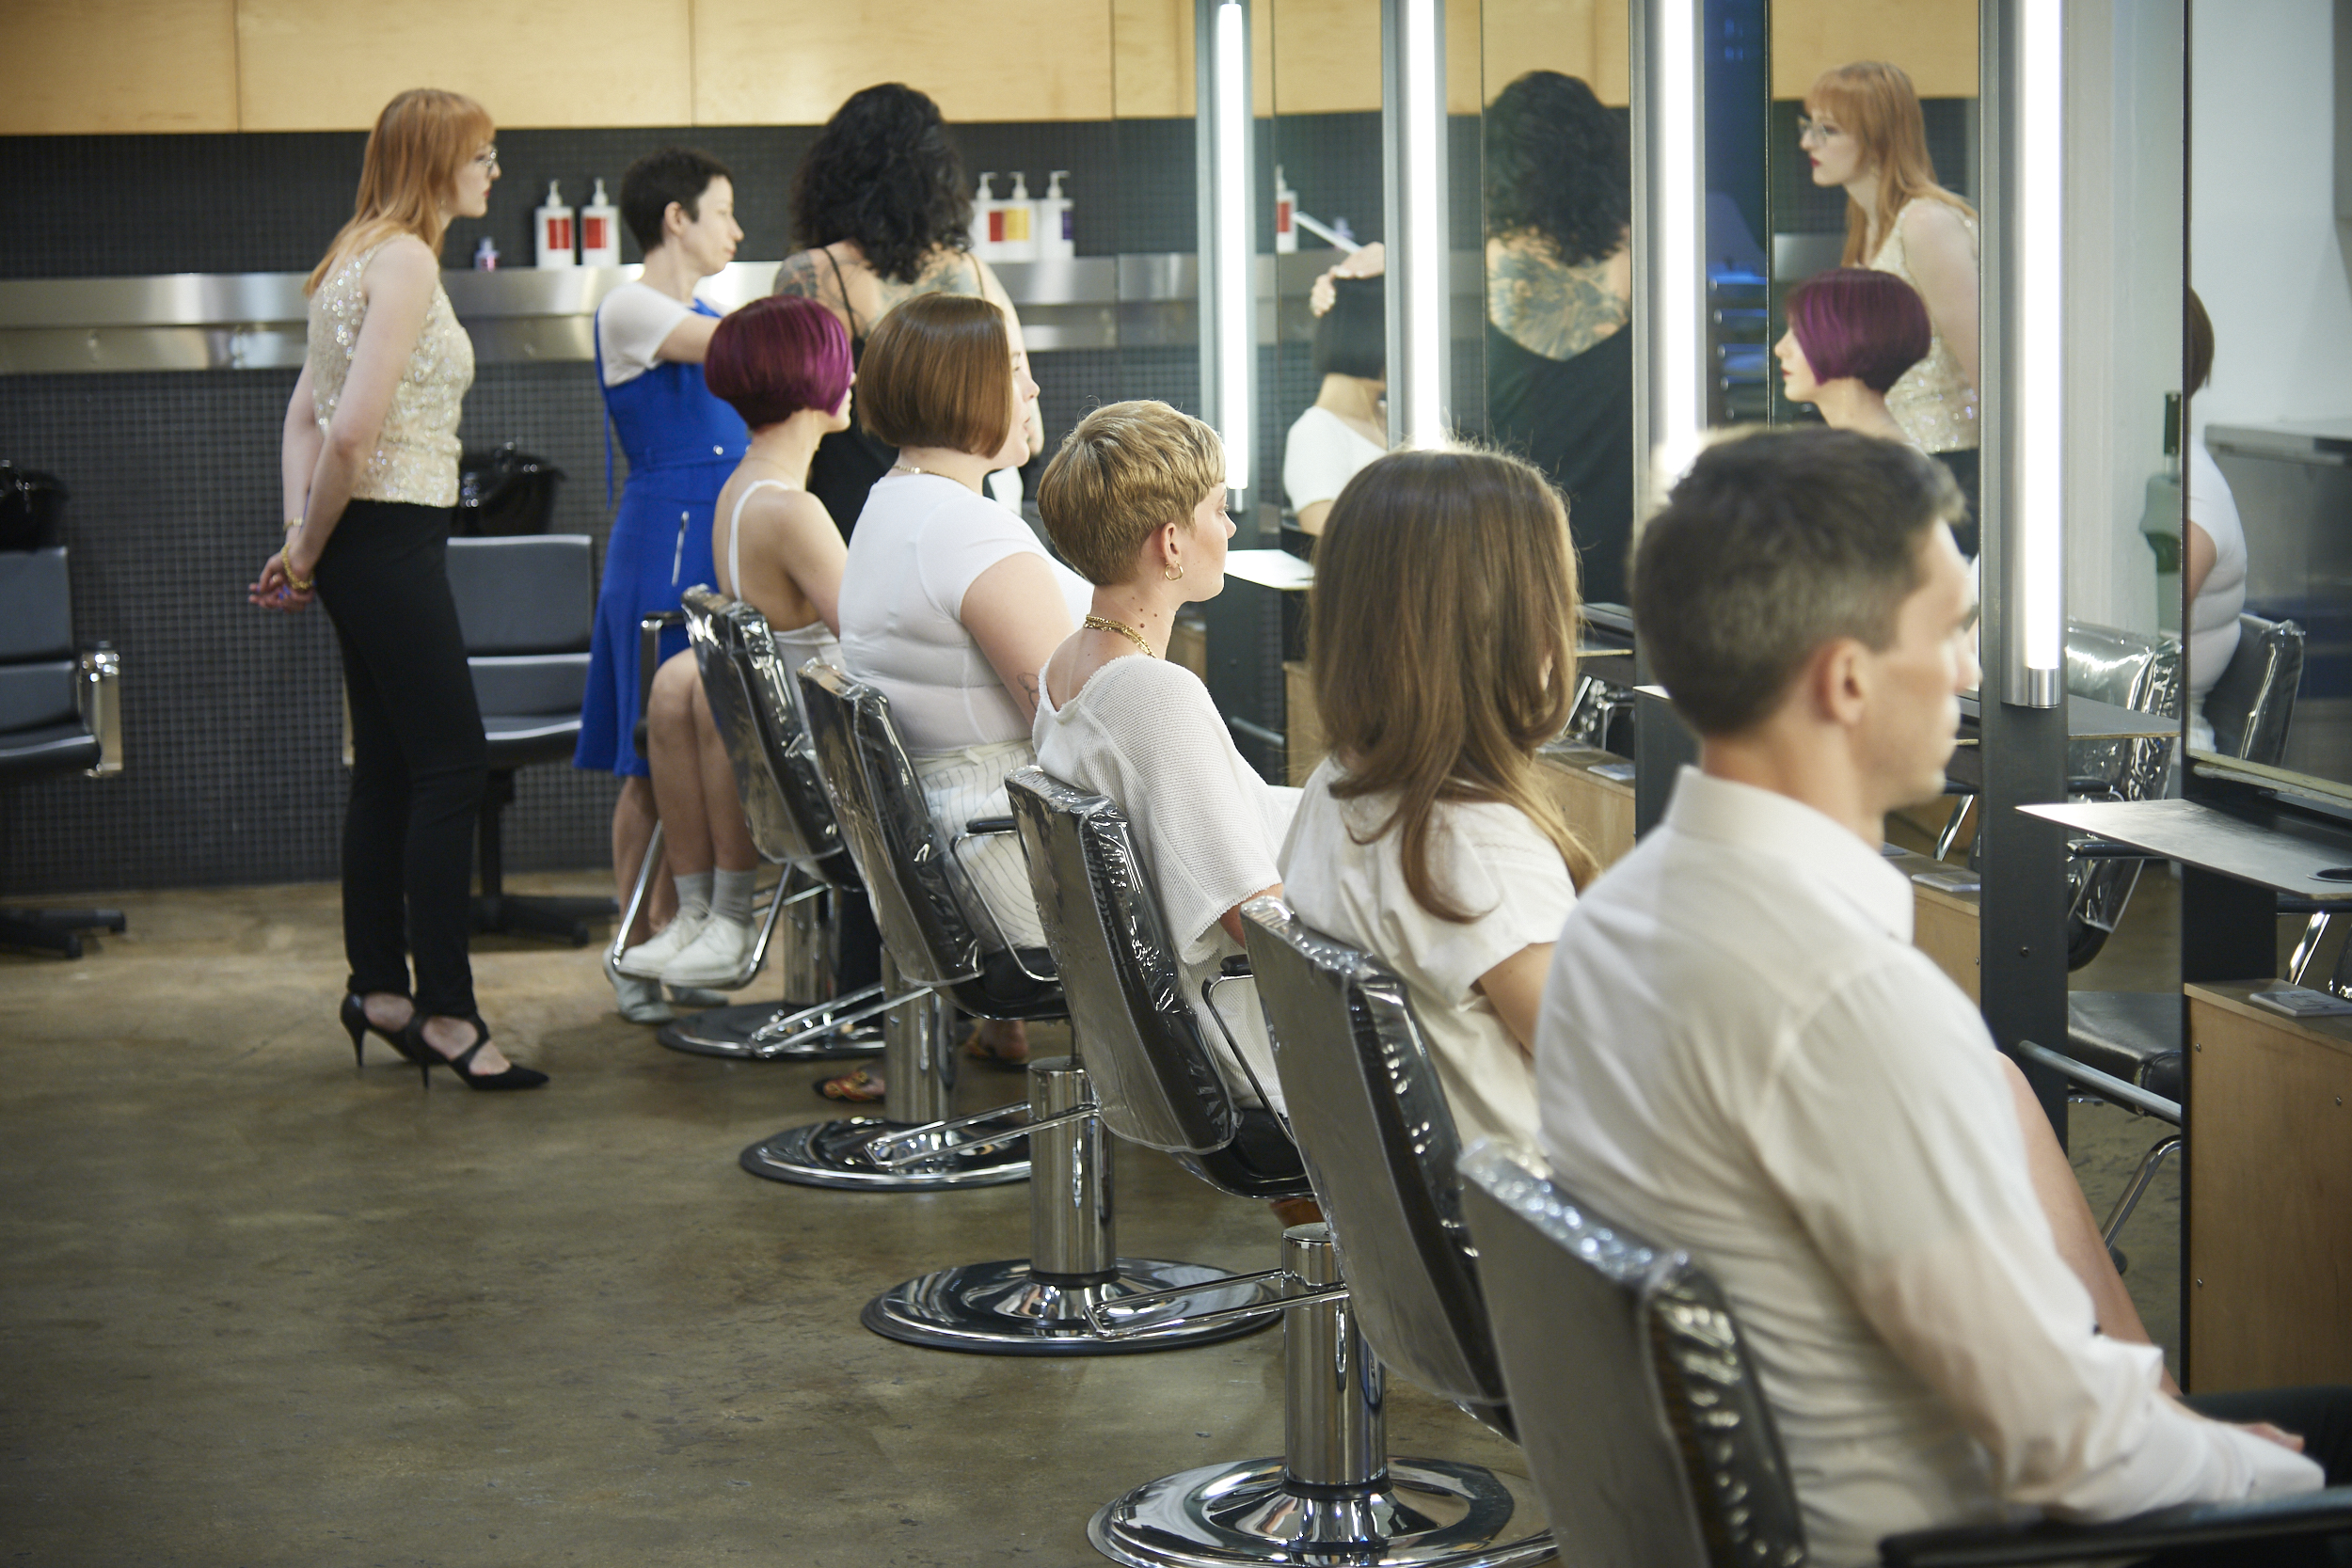 Lenny looks on as ARROJO master stylists check her presentation hair cuts with a fine tooth comb.